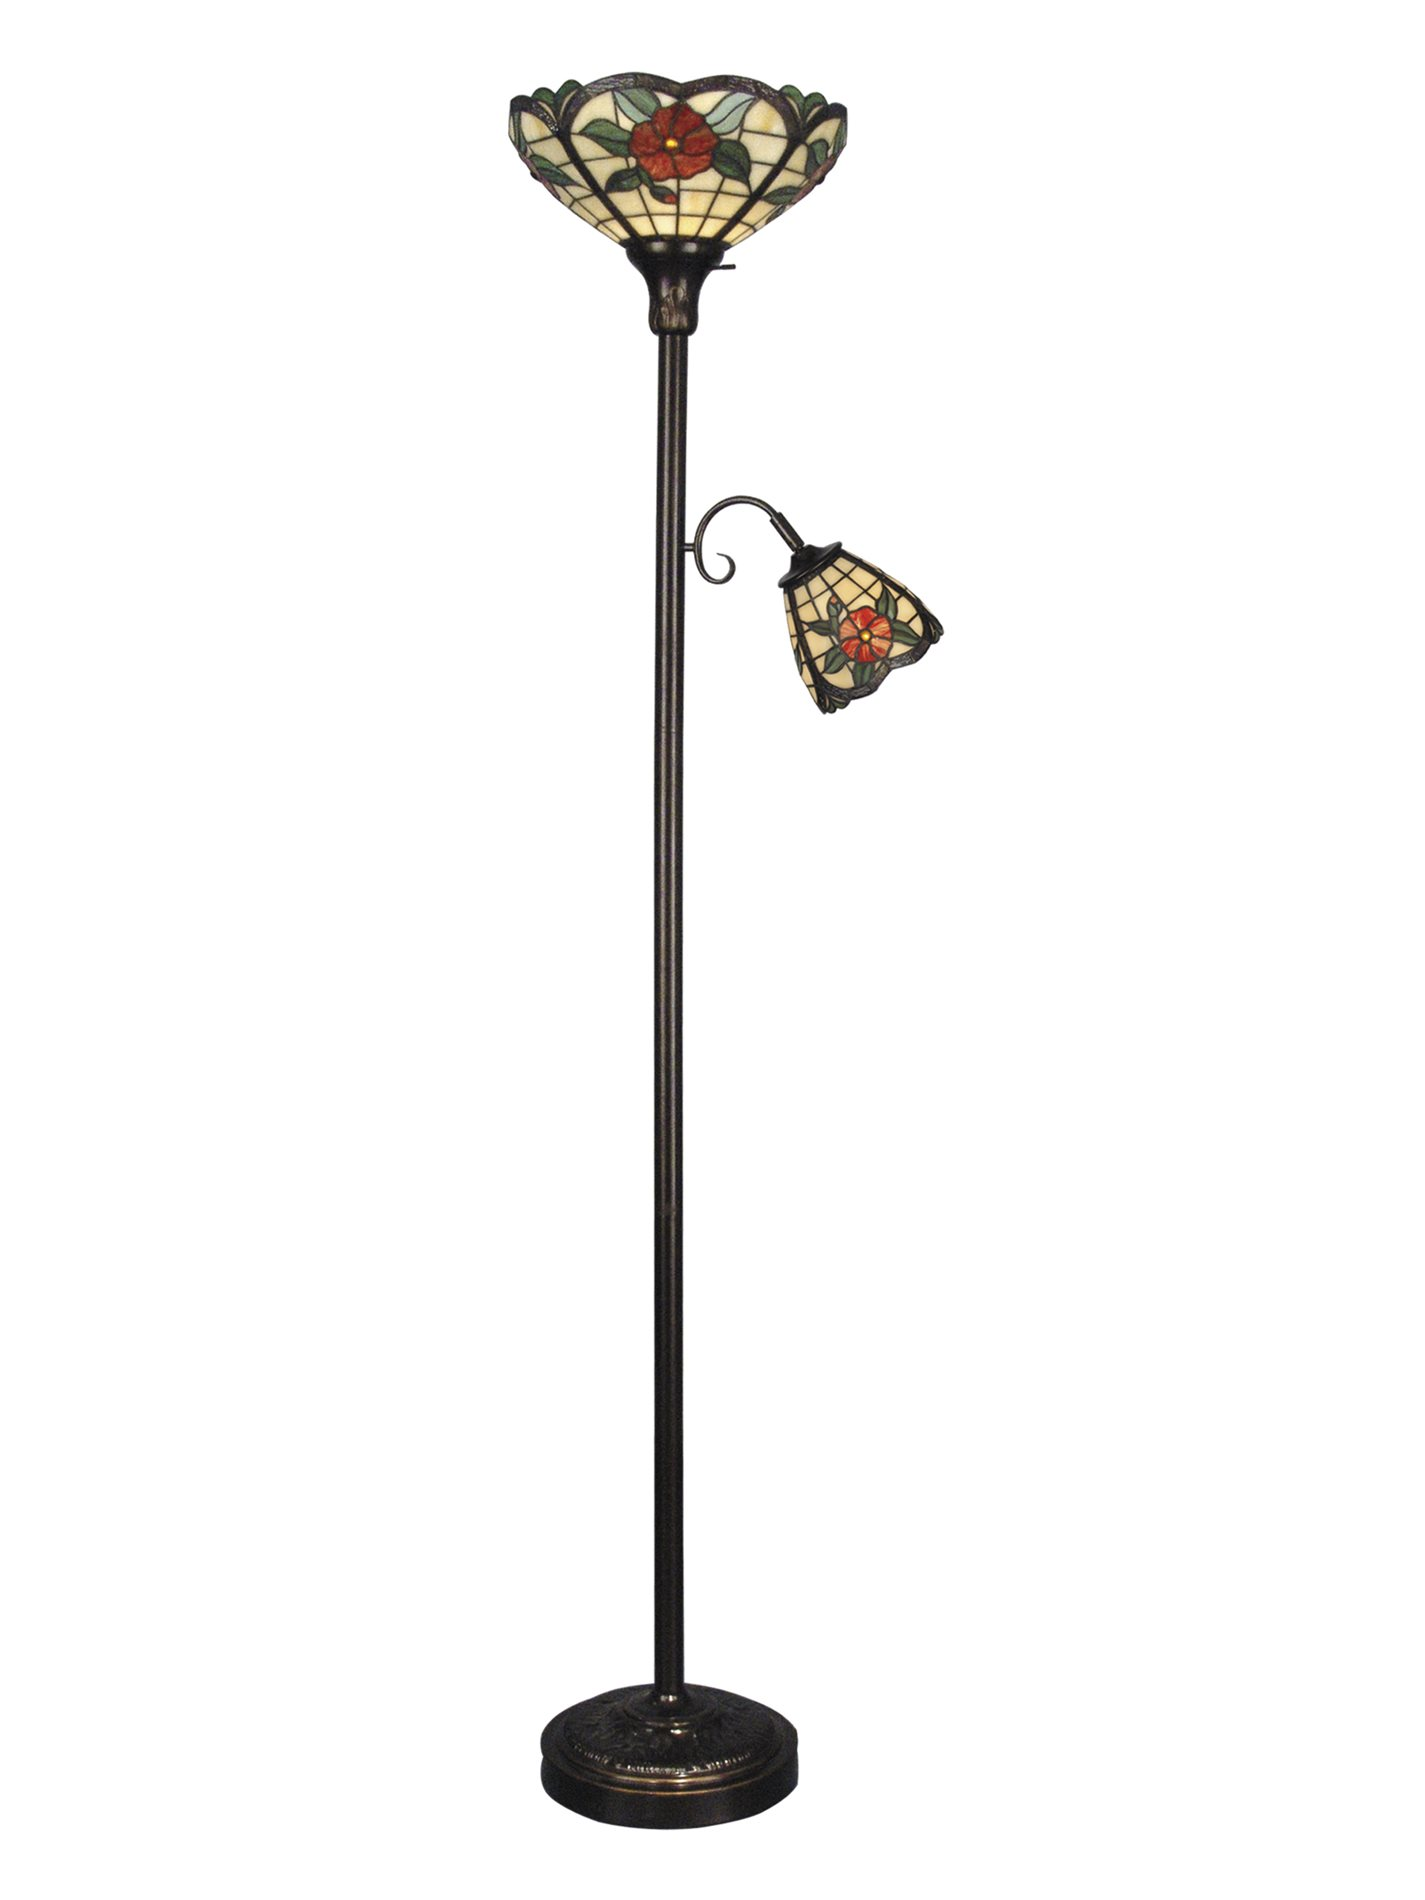 Dale Tiffany Tr90030 Tiffany Torchiere Lamp Dt Tr90030